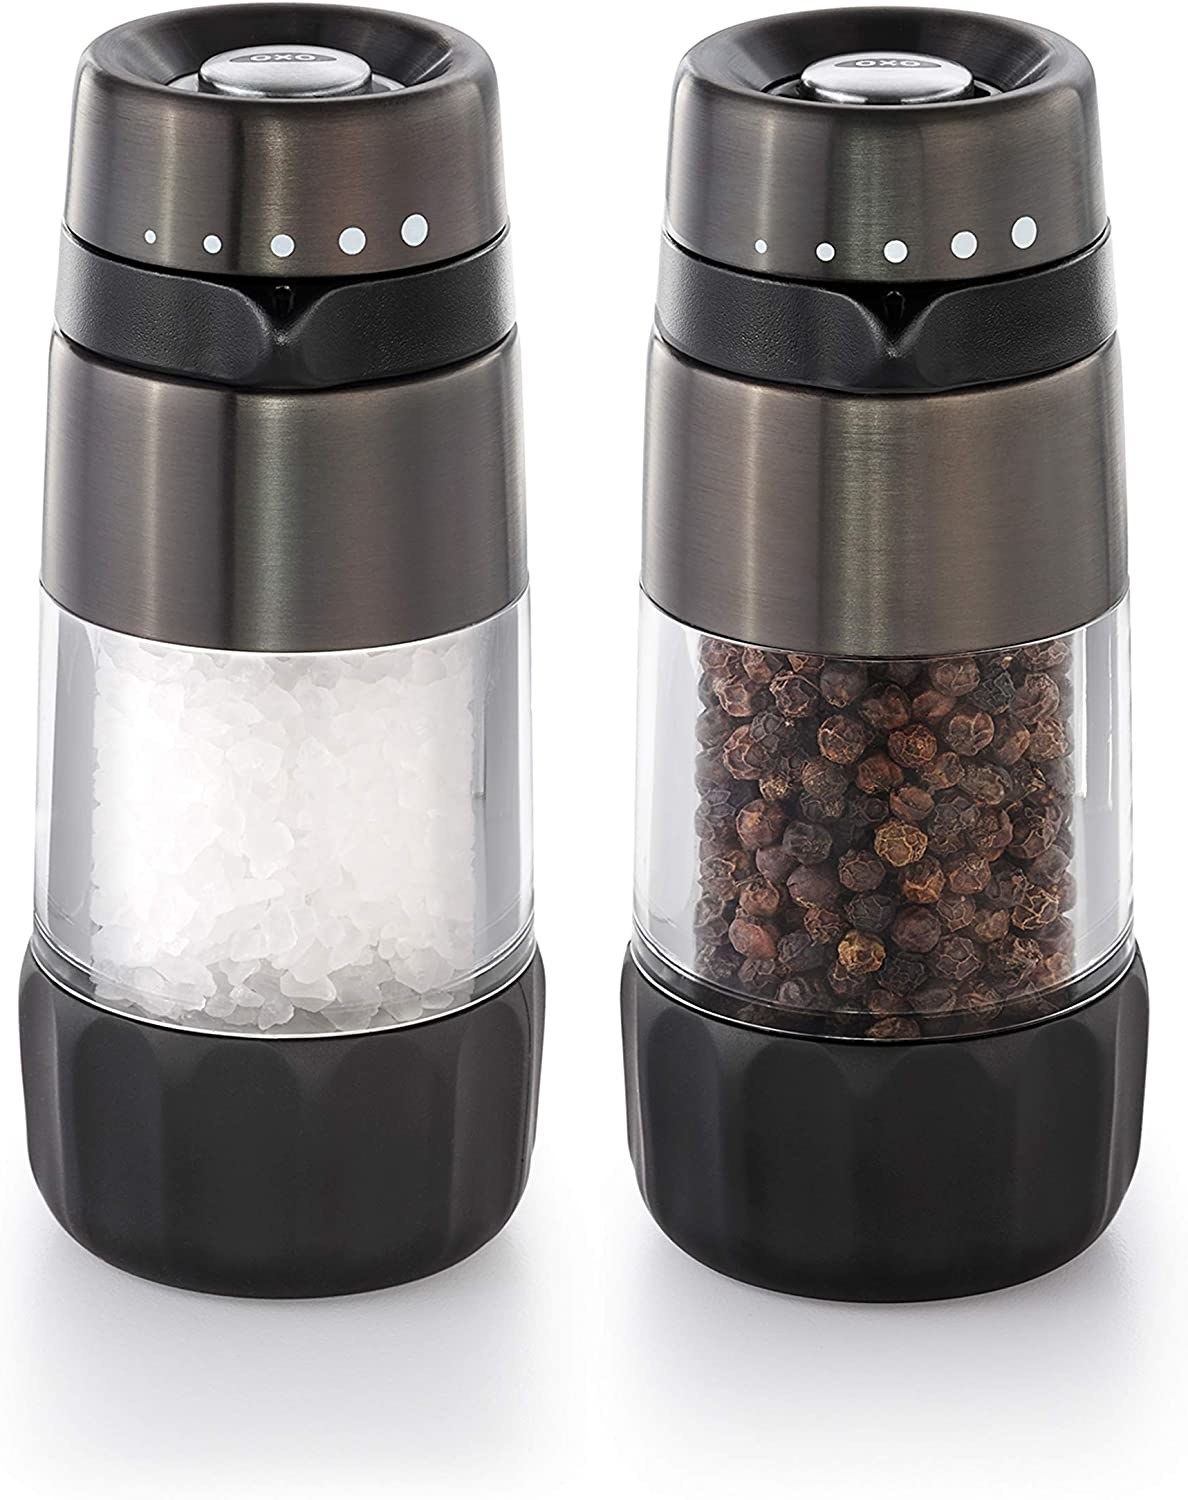 the stainless steel refillable salt and pepper shakers